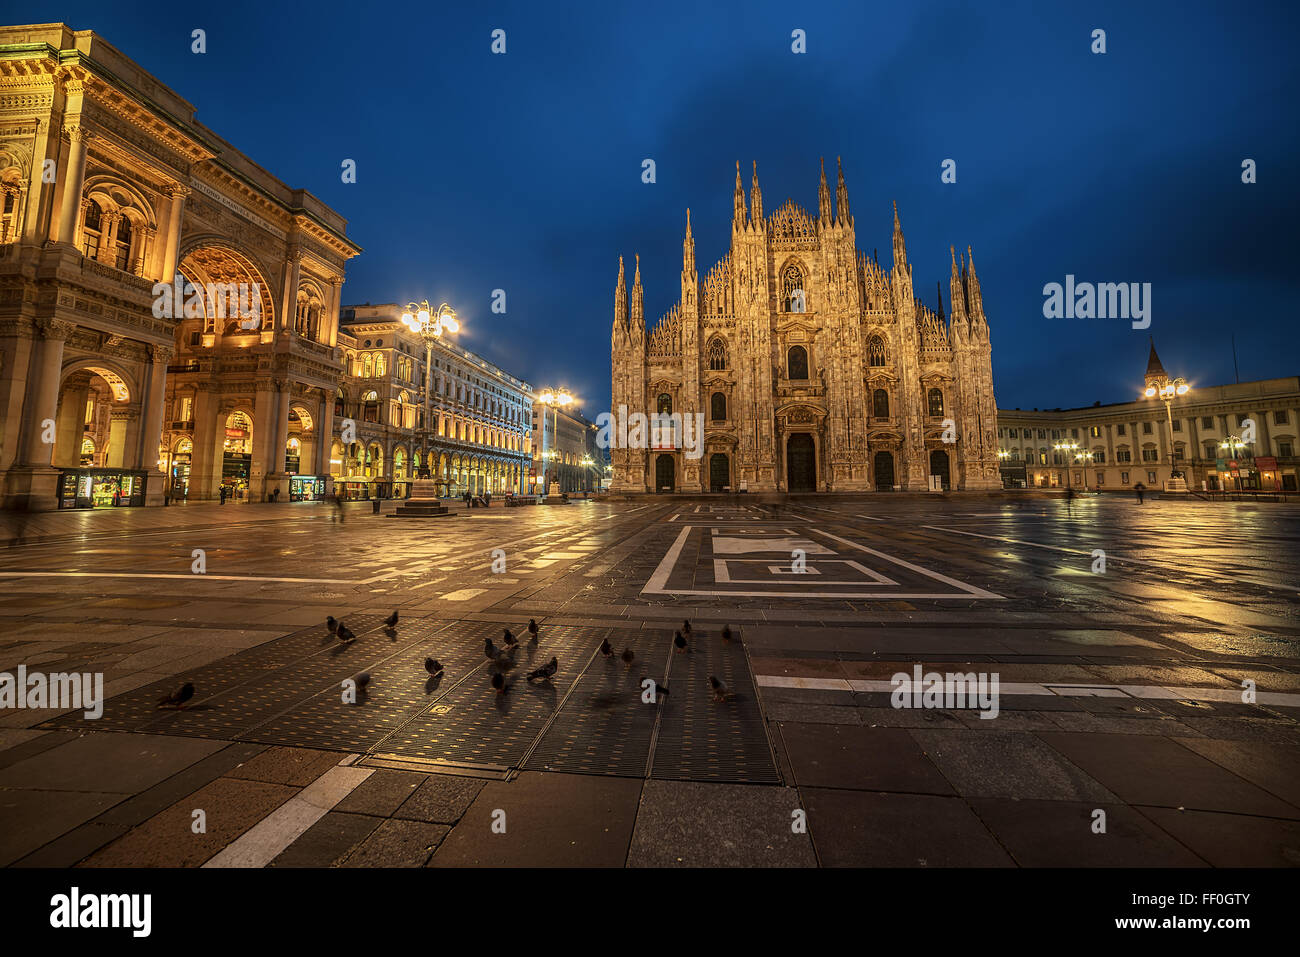 Milan, Italy: Piazza del Duomo, Cathedral Square - Stock Image